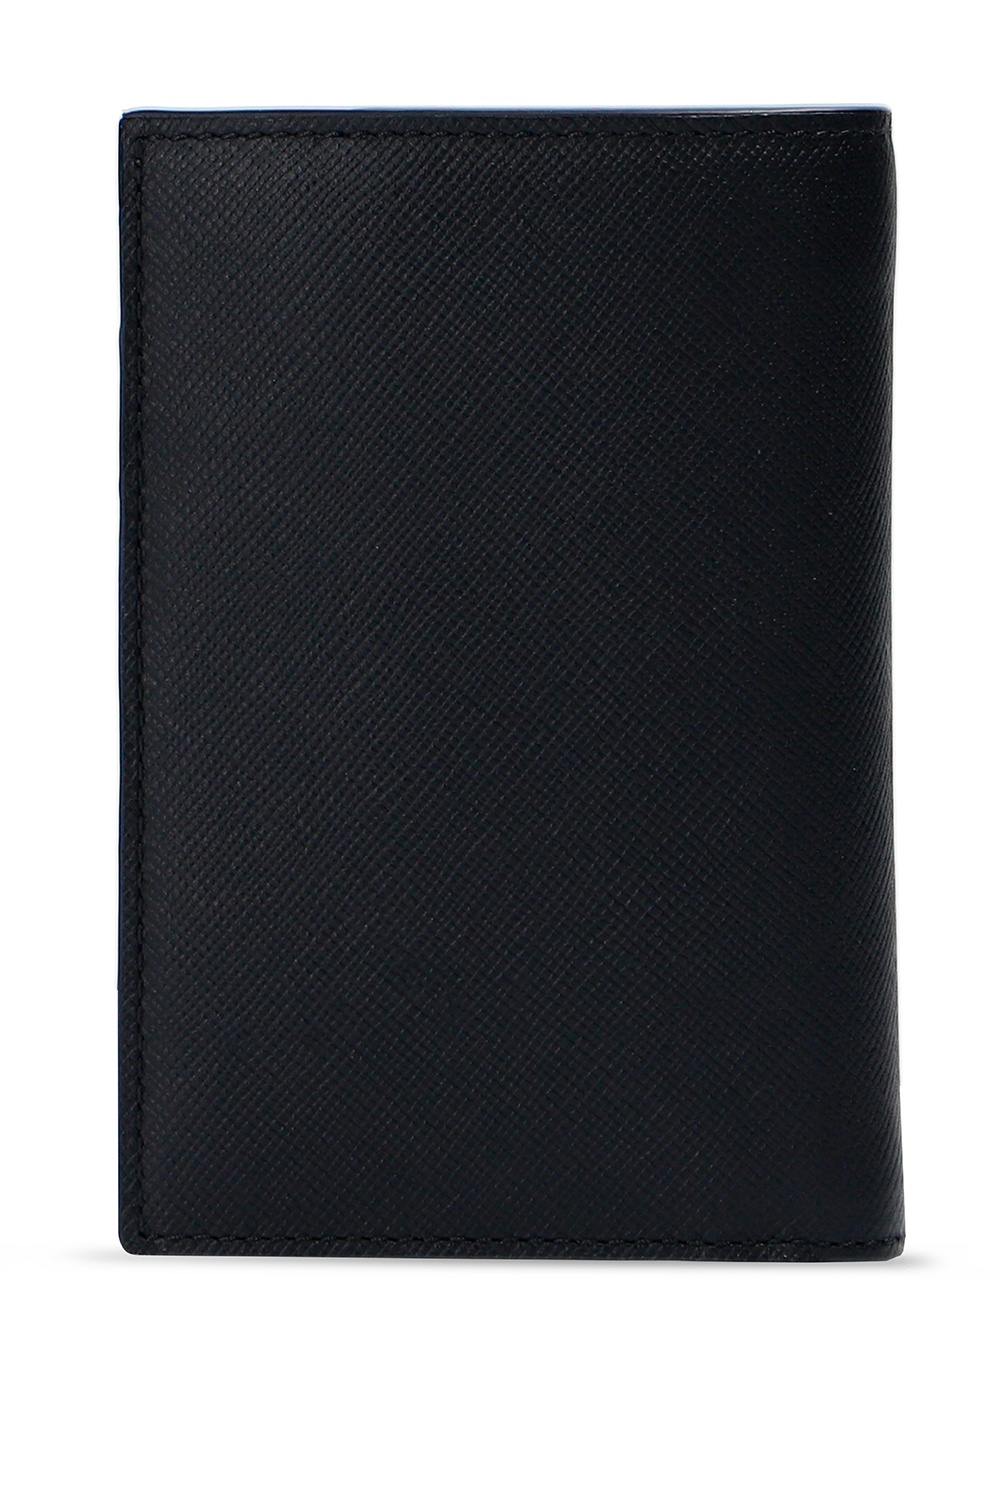 Paul Smith Branded leather wallet